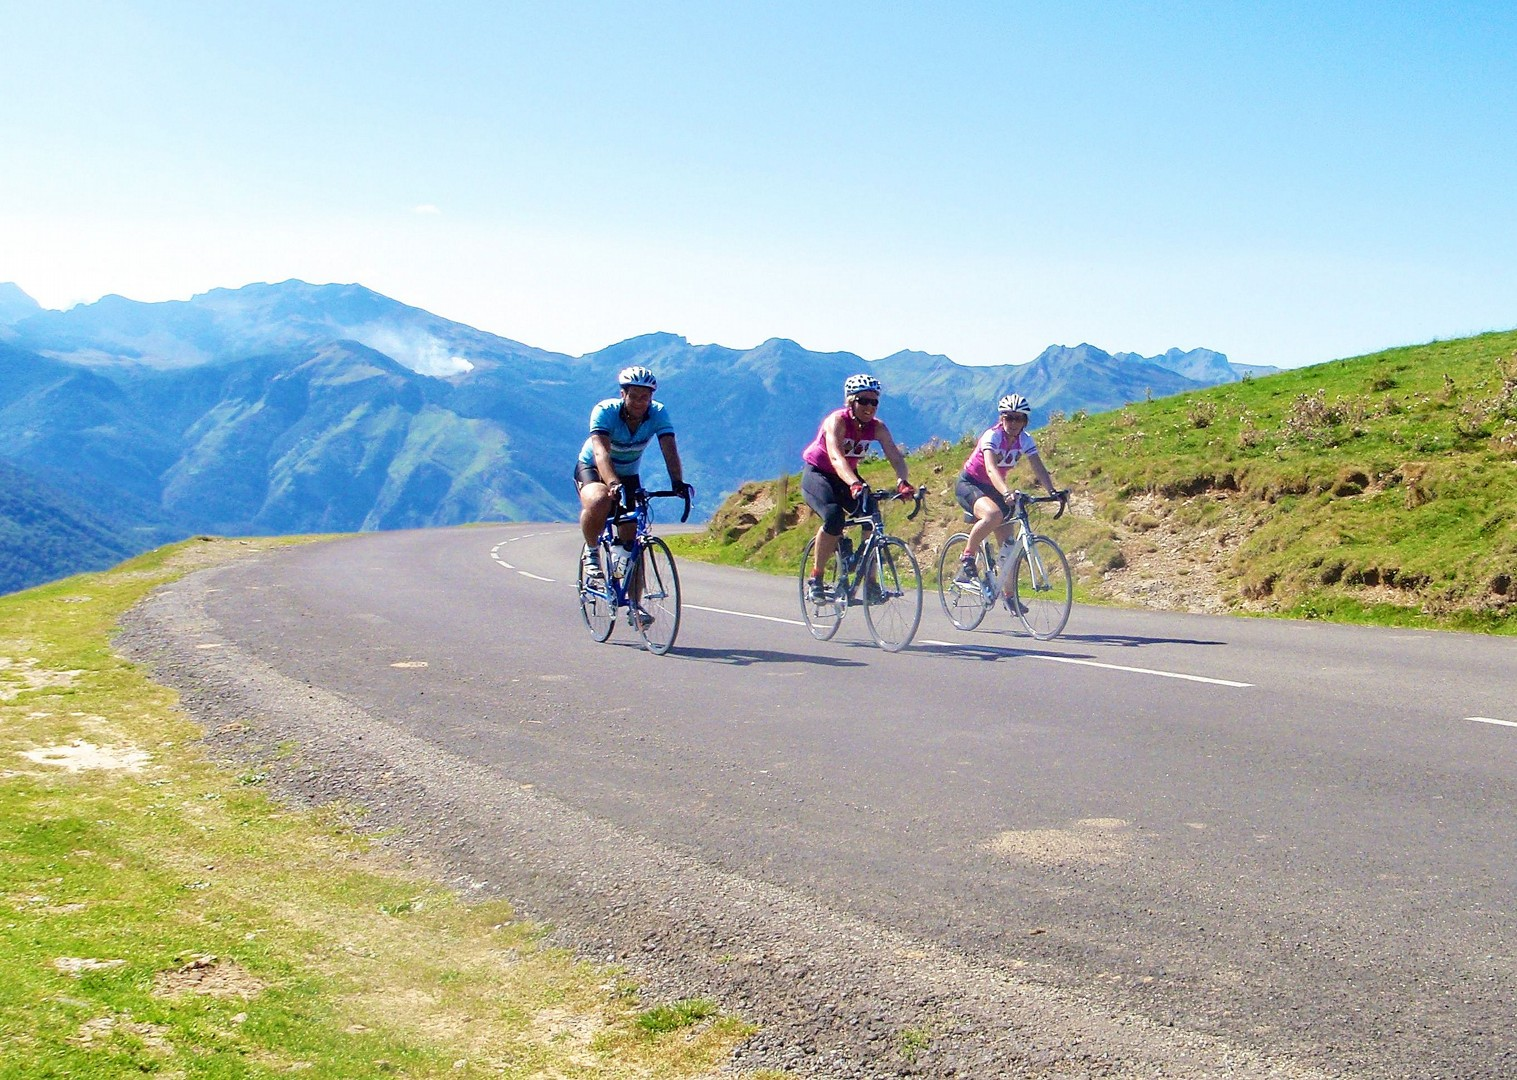 group-cycling-fitness-week-france-pyrenees.jpg - France - Pyrenees Fitness Week - Guided Road Cycling Holiday (Grade 3-4) - Road Cycling